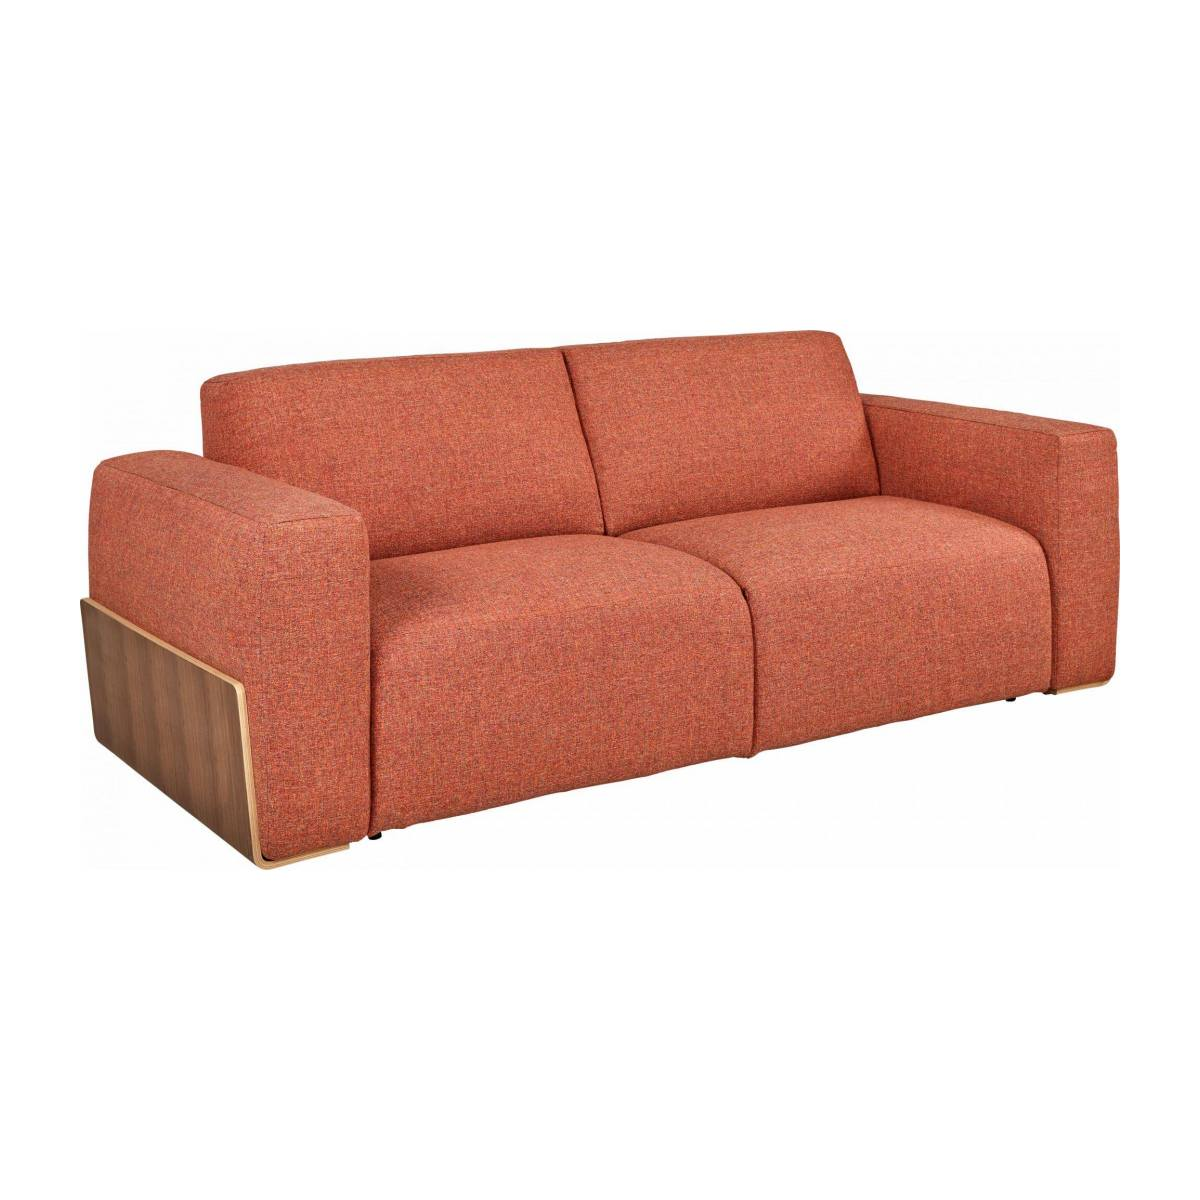 Canapé convertible 3 places en tissu - Orange  n°4